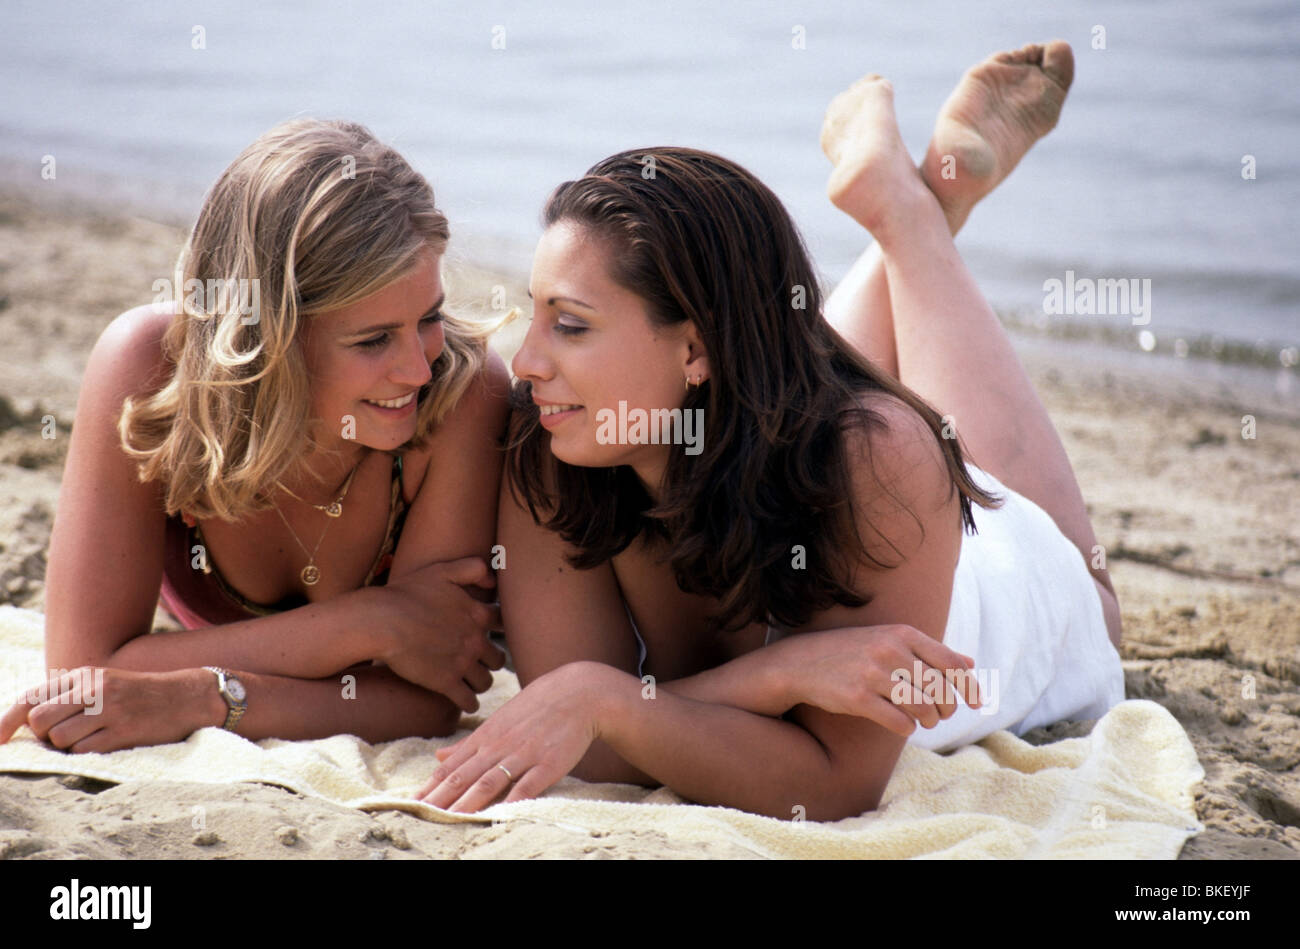 Young friends on beach - Stock Image